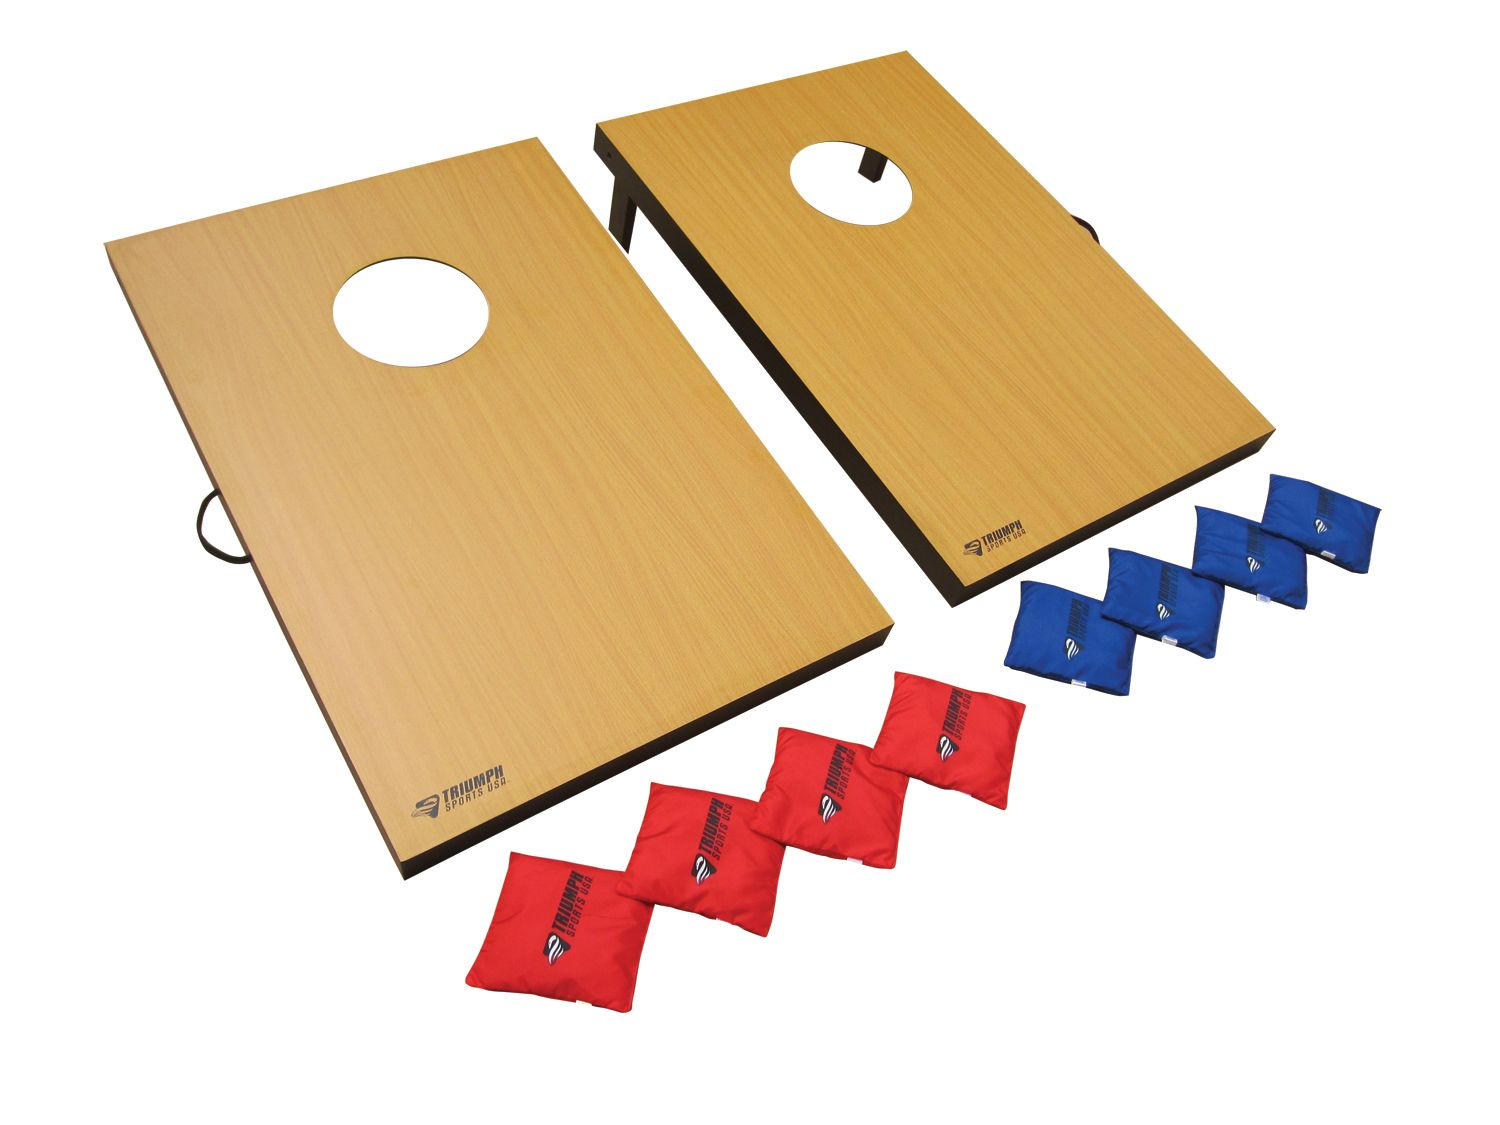 Triumph Sports Usa 2-in-1 Bag Toss Tournament Game and 3-Hole Washer Toss